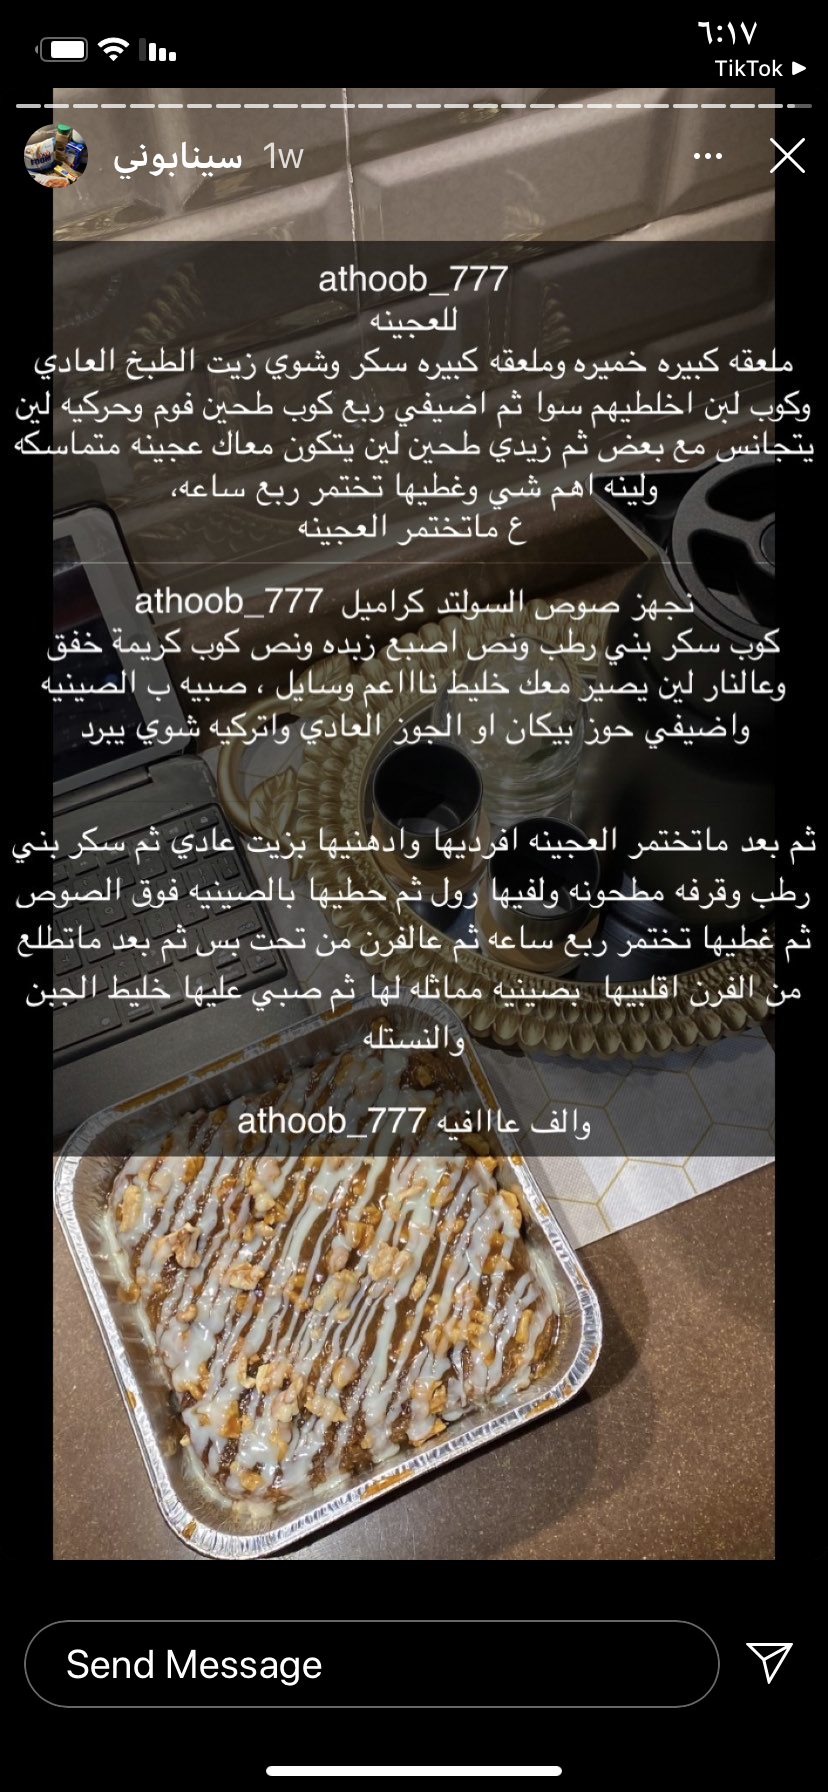 Instagram Photo By Noor Alghannam Jun 3 2013 At 6 38pm Utc Cooking Recipes Food Receipes Savoury Food